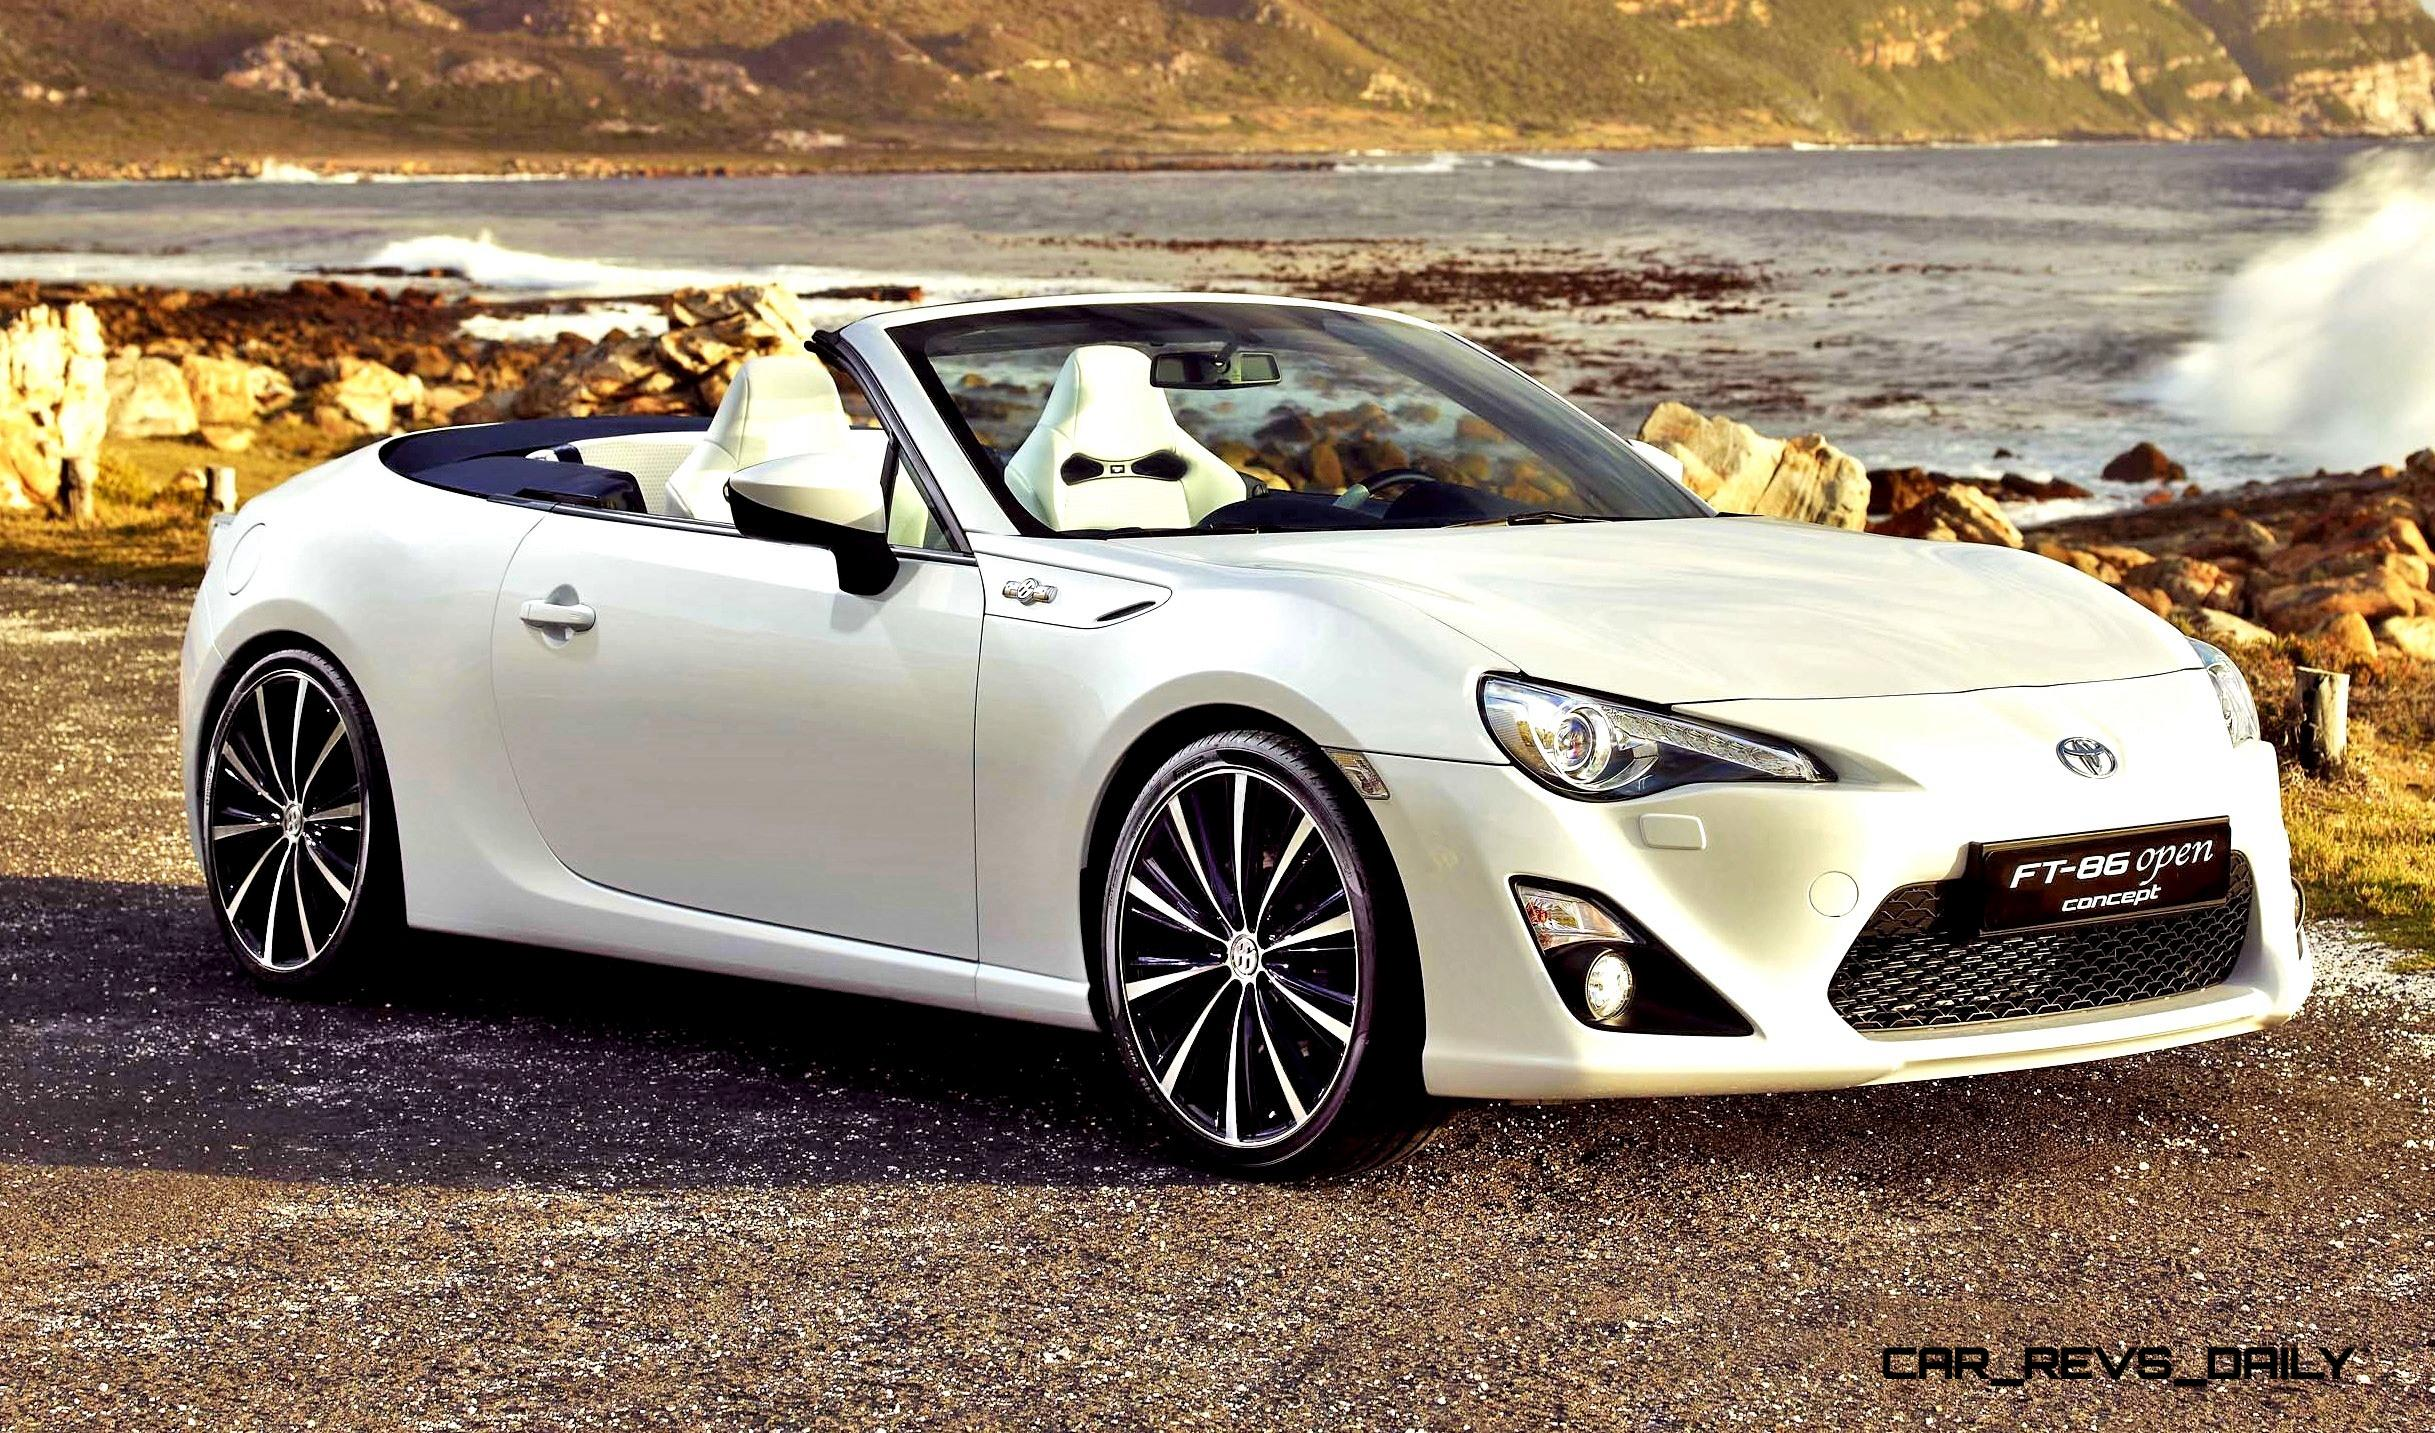 Toyota Ft 86 >> Concept Flashback - 2013 Toyota FT86 Open Concept is Stunning Ragtop